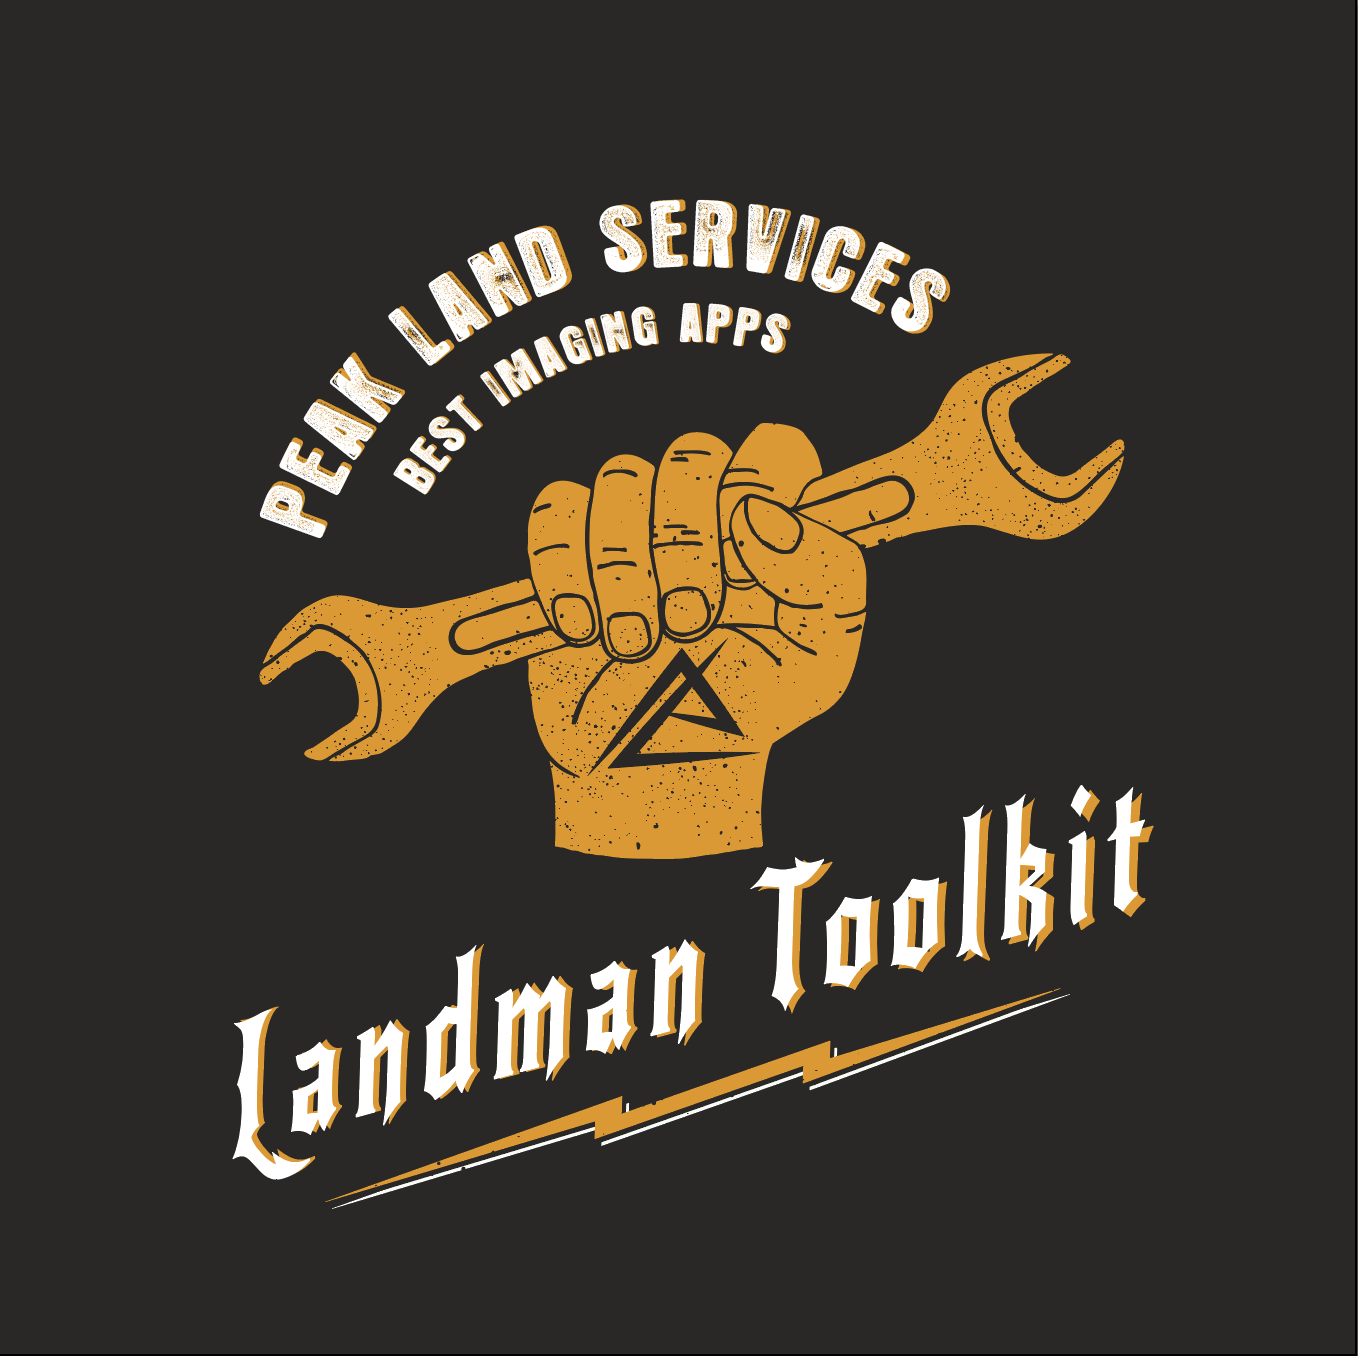 Peak Land Services Landman Toolkit